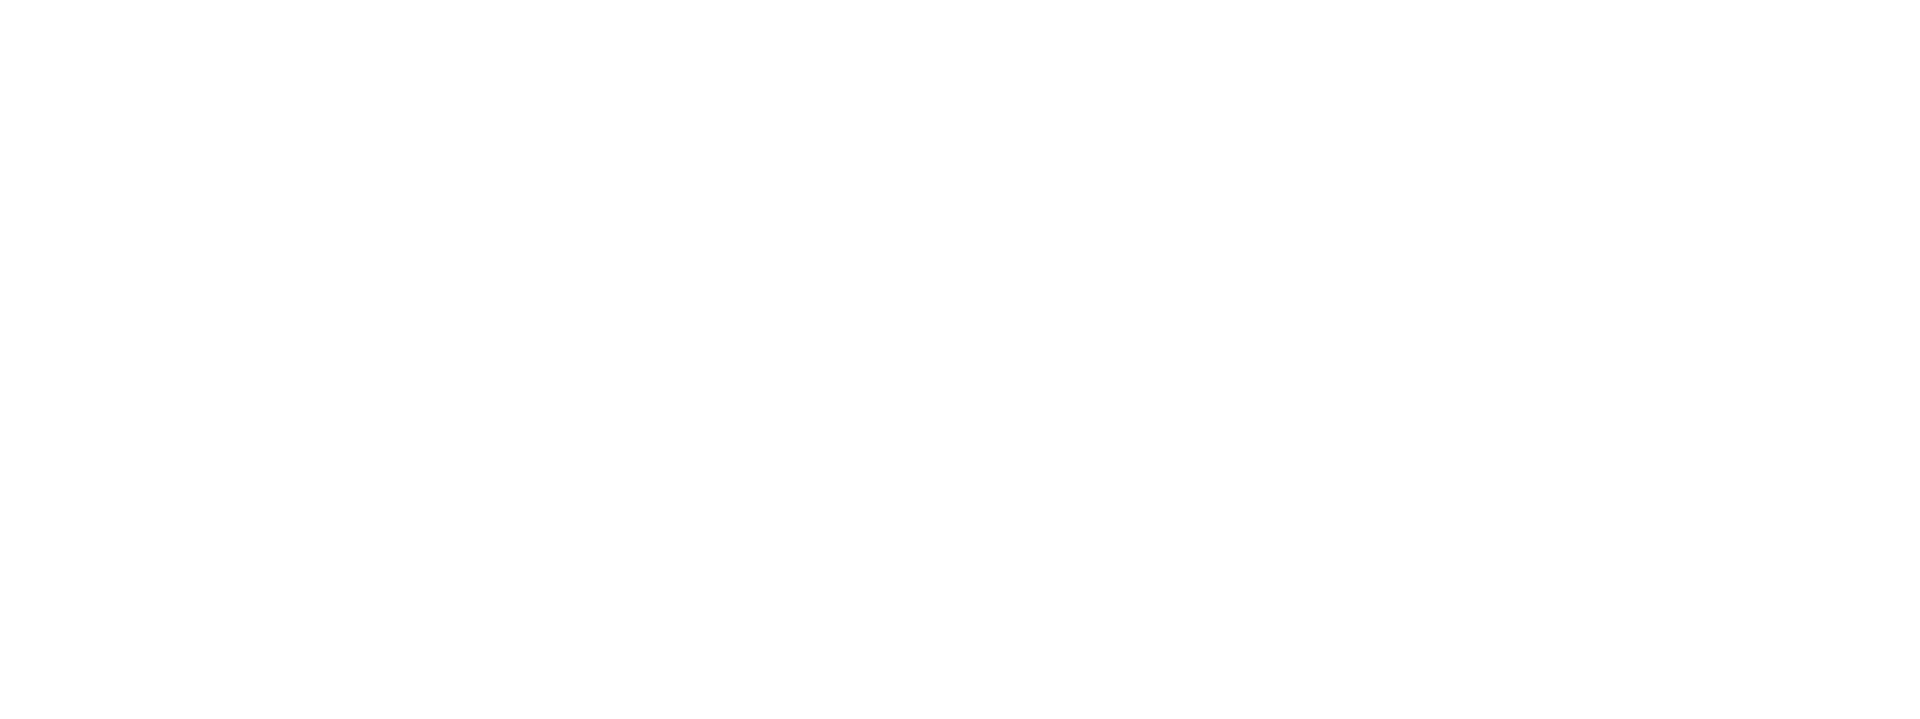 Doctosolutions